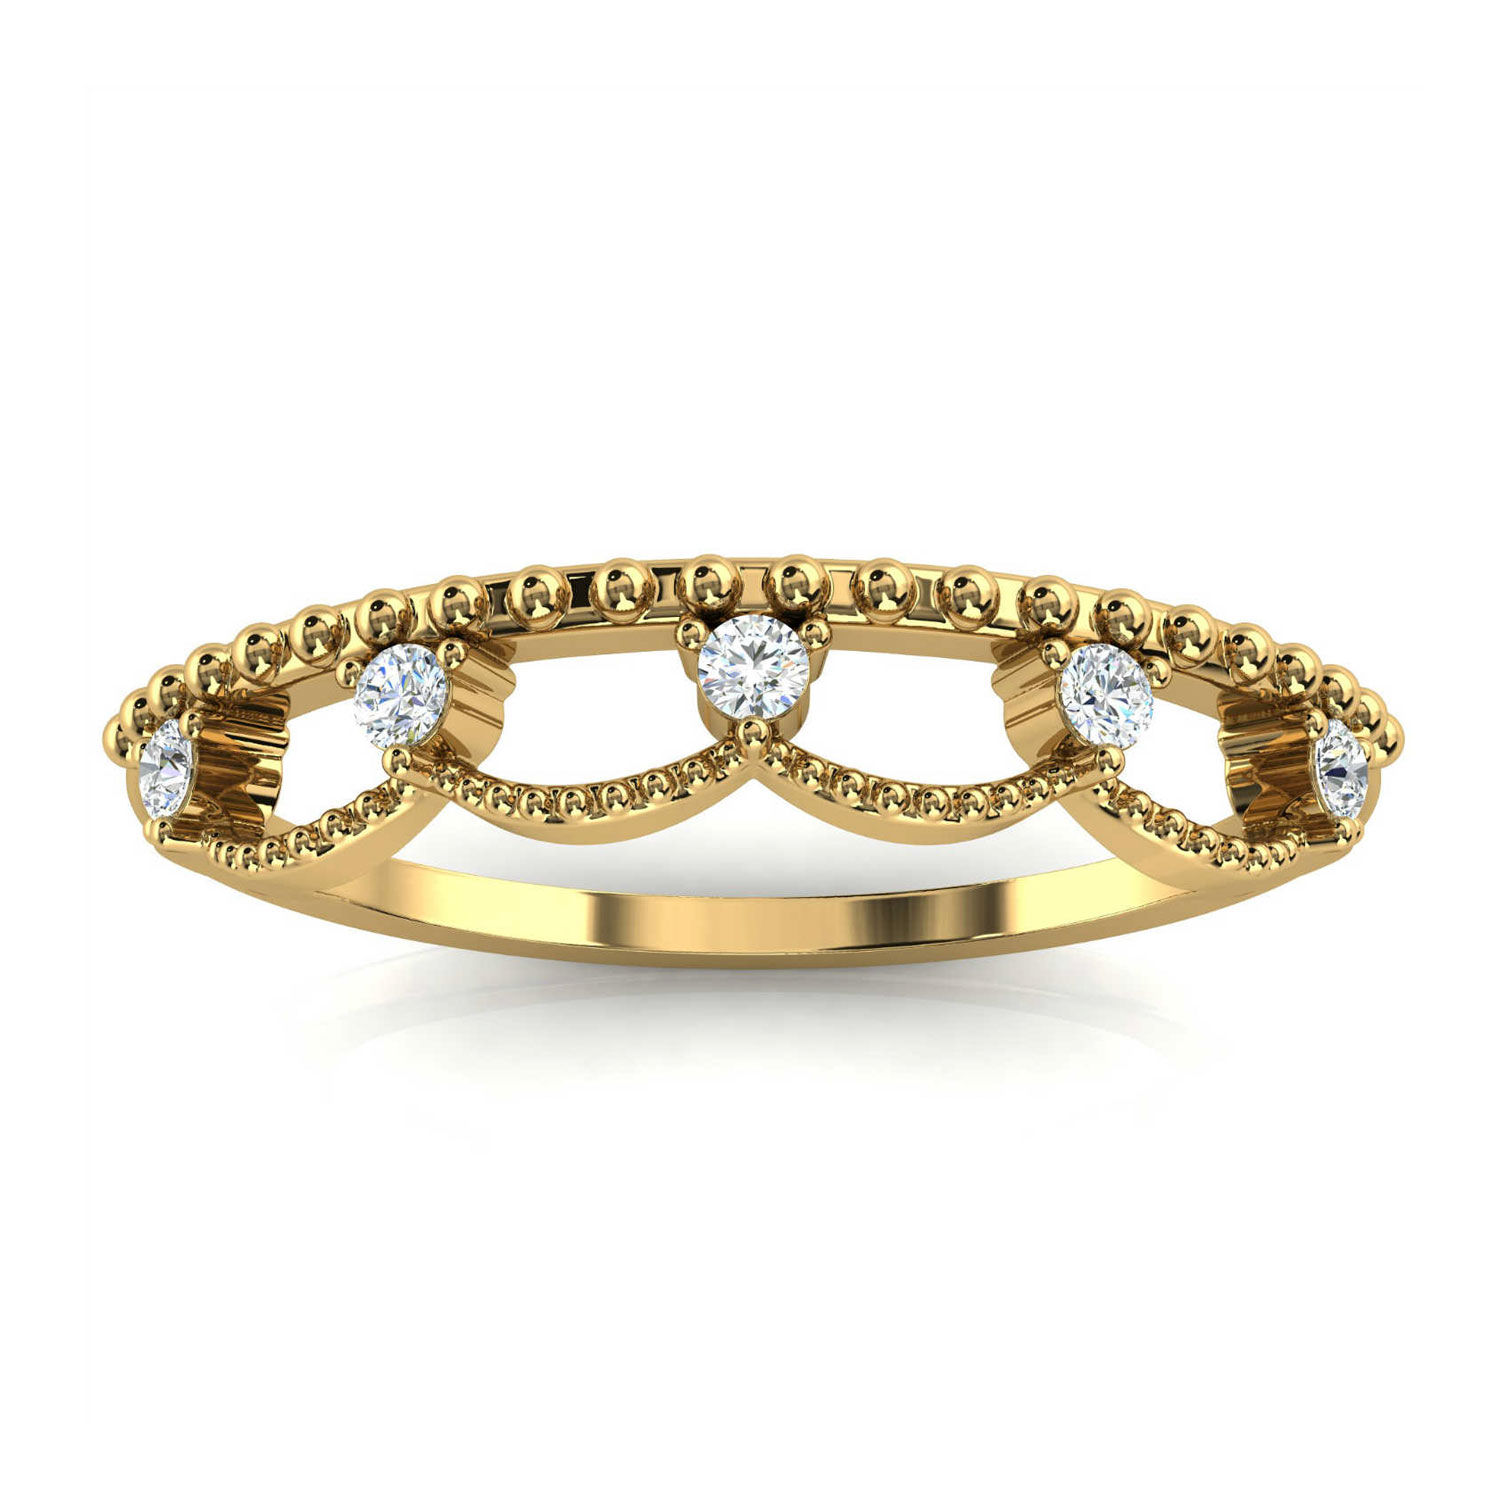 14K Yellow Gold Fel Petite Organice Design Diamond Ring ( 1/10 ct. tw)